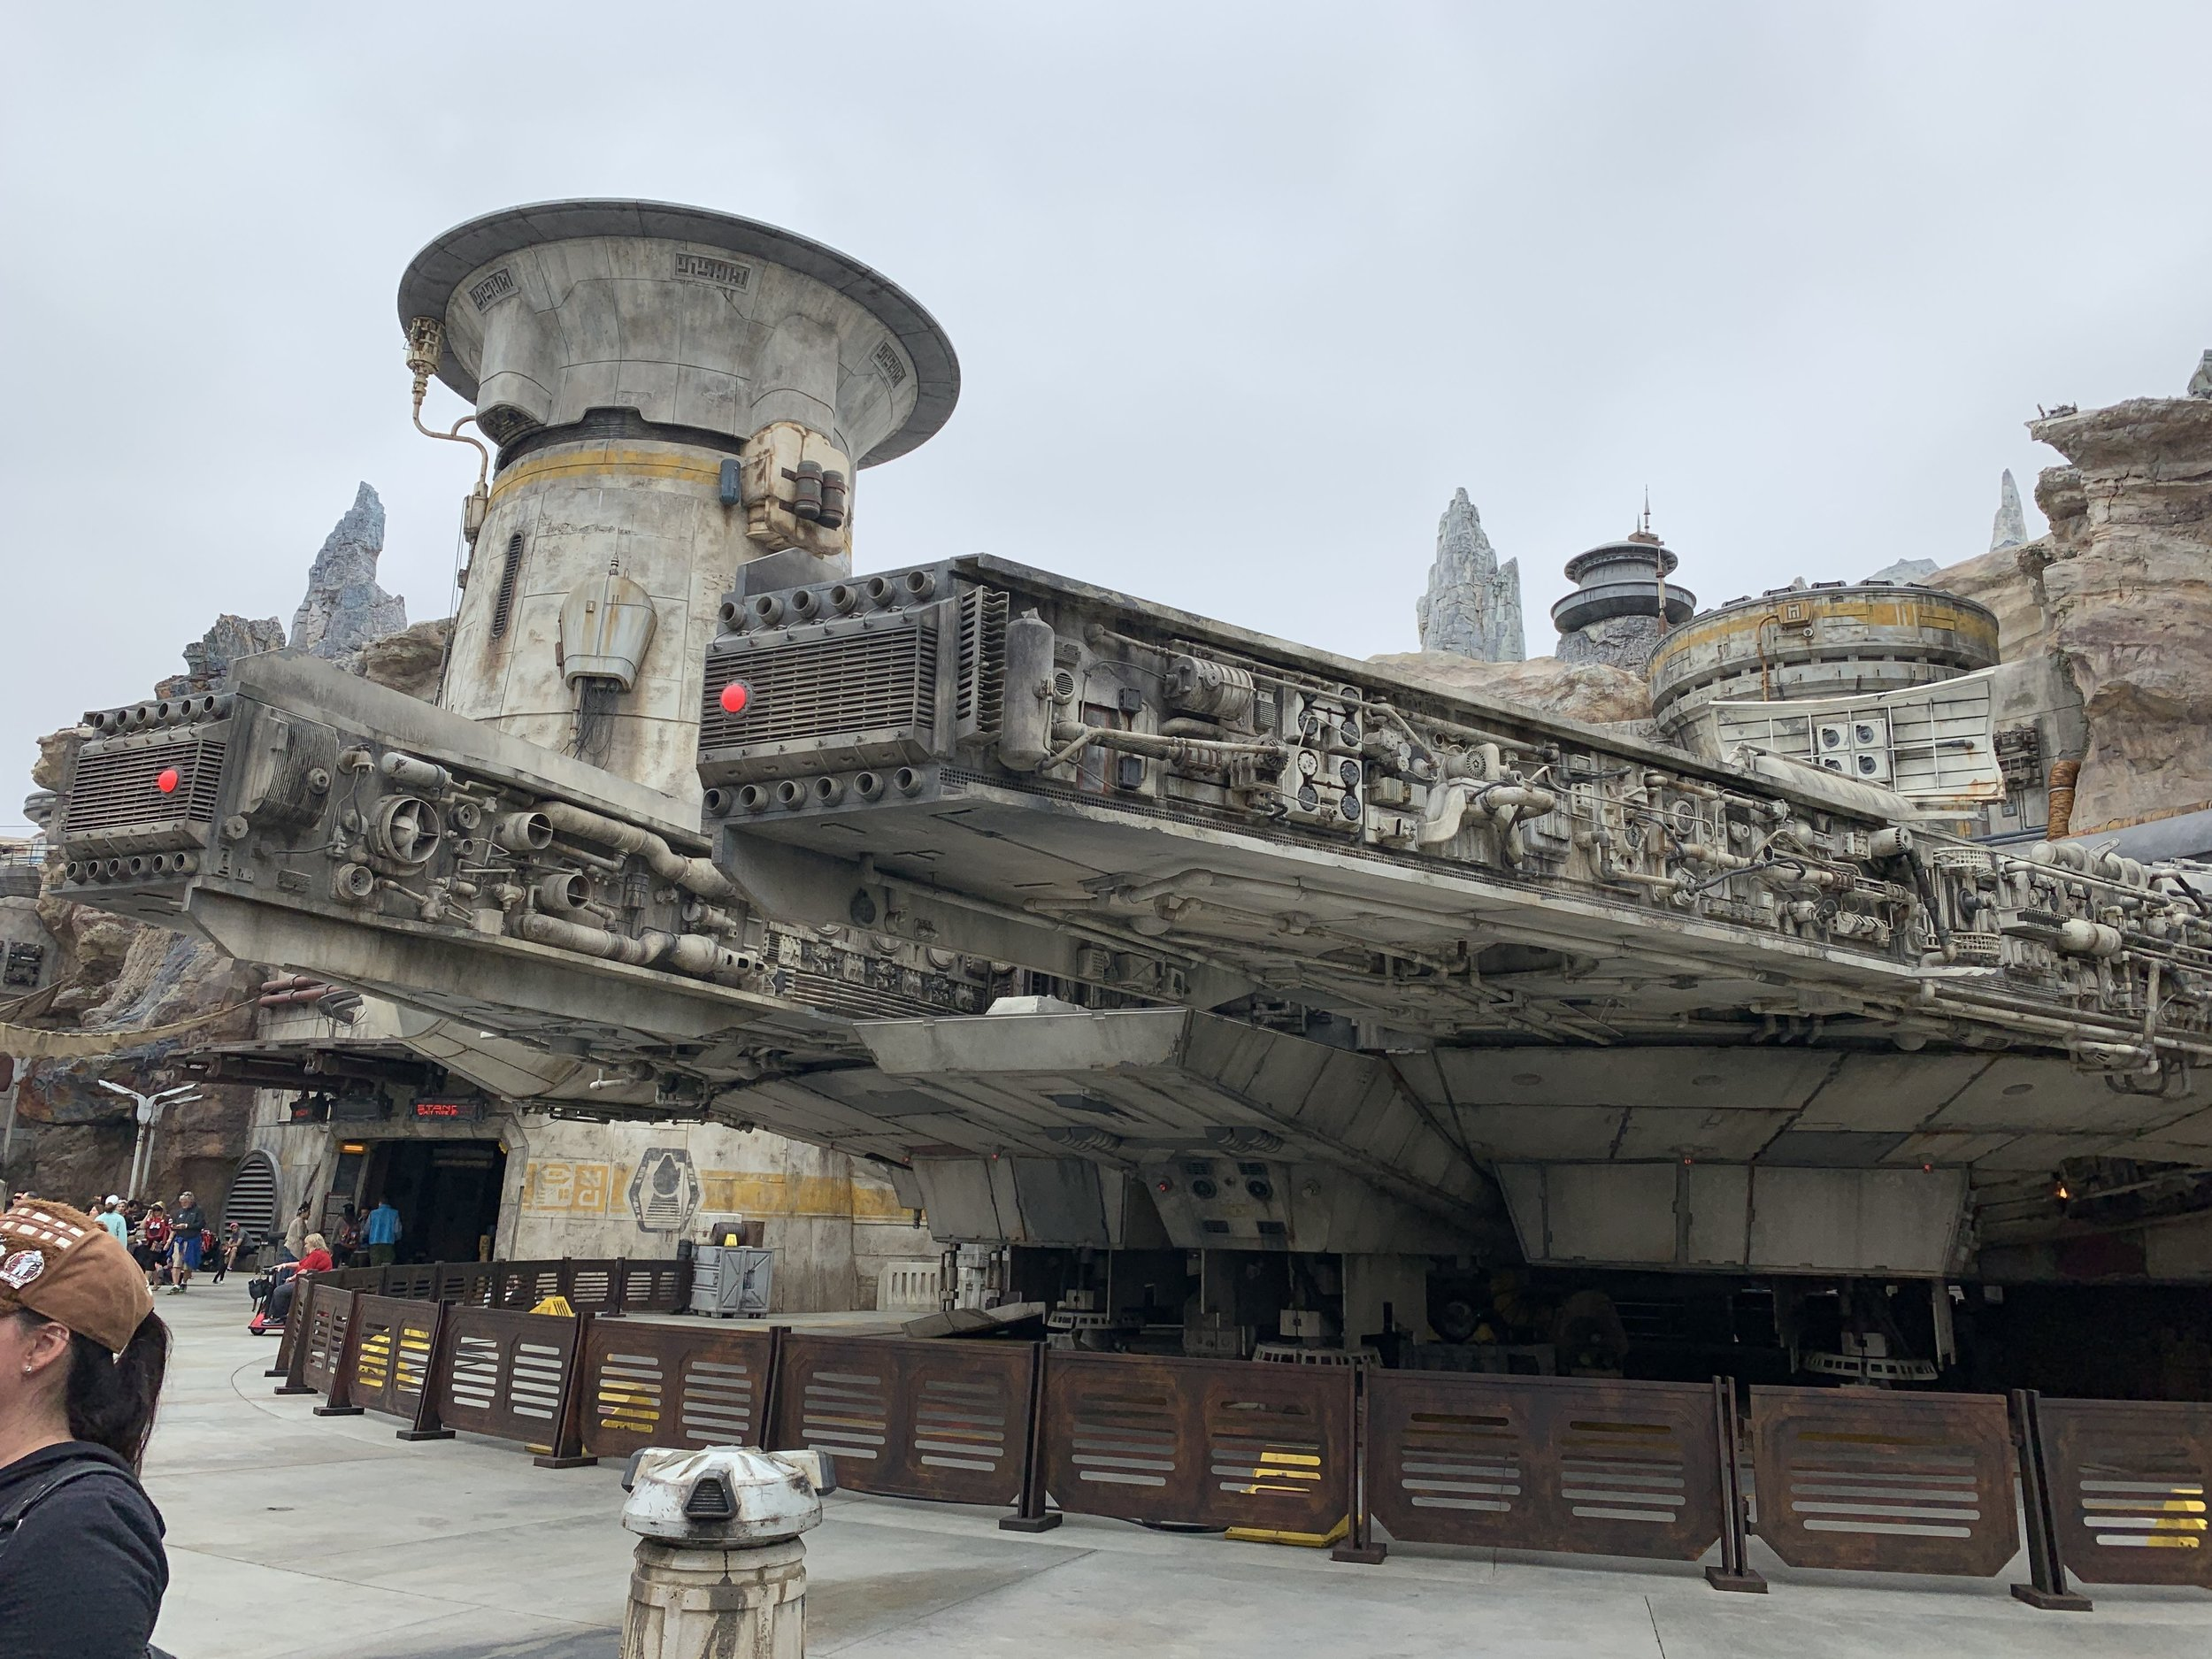 One of the coolest parts of Batuu is coming up close with the legendary Millennium Falcon